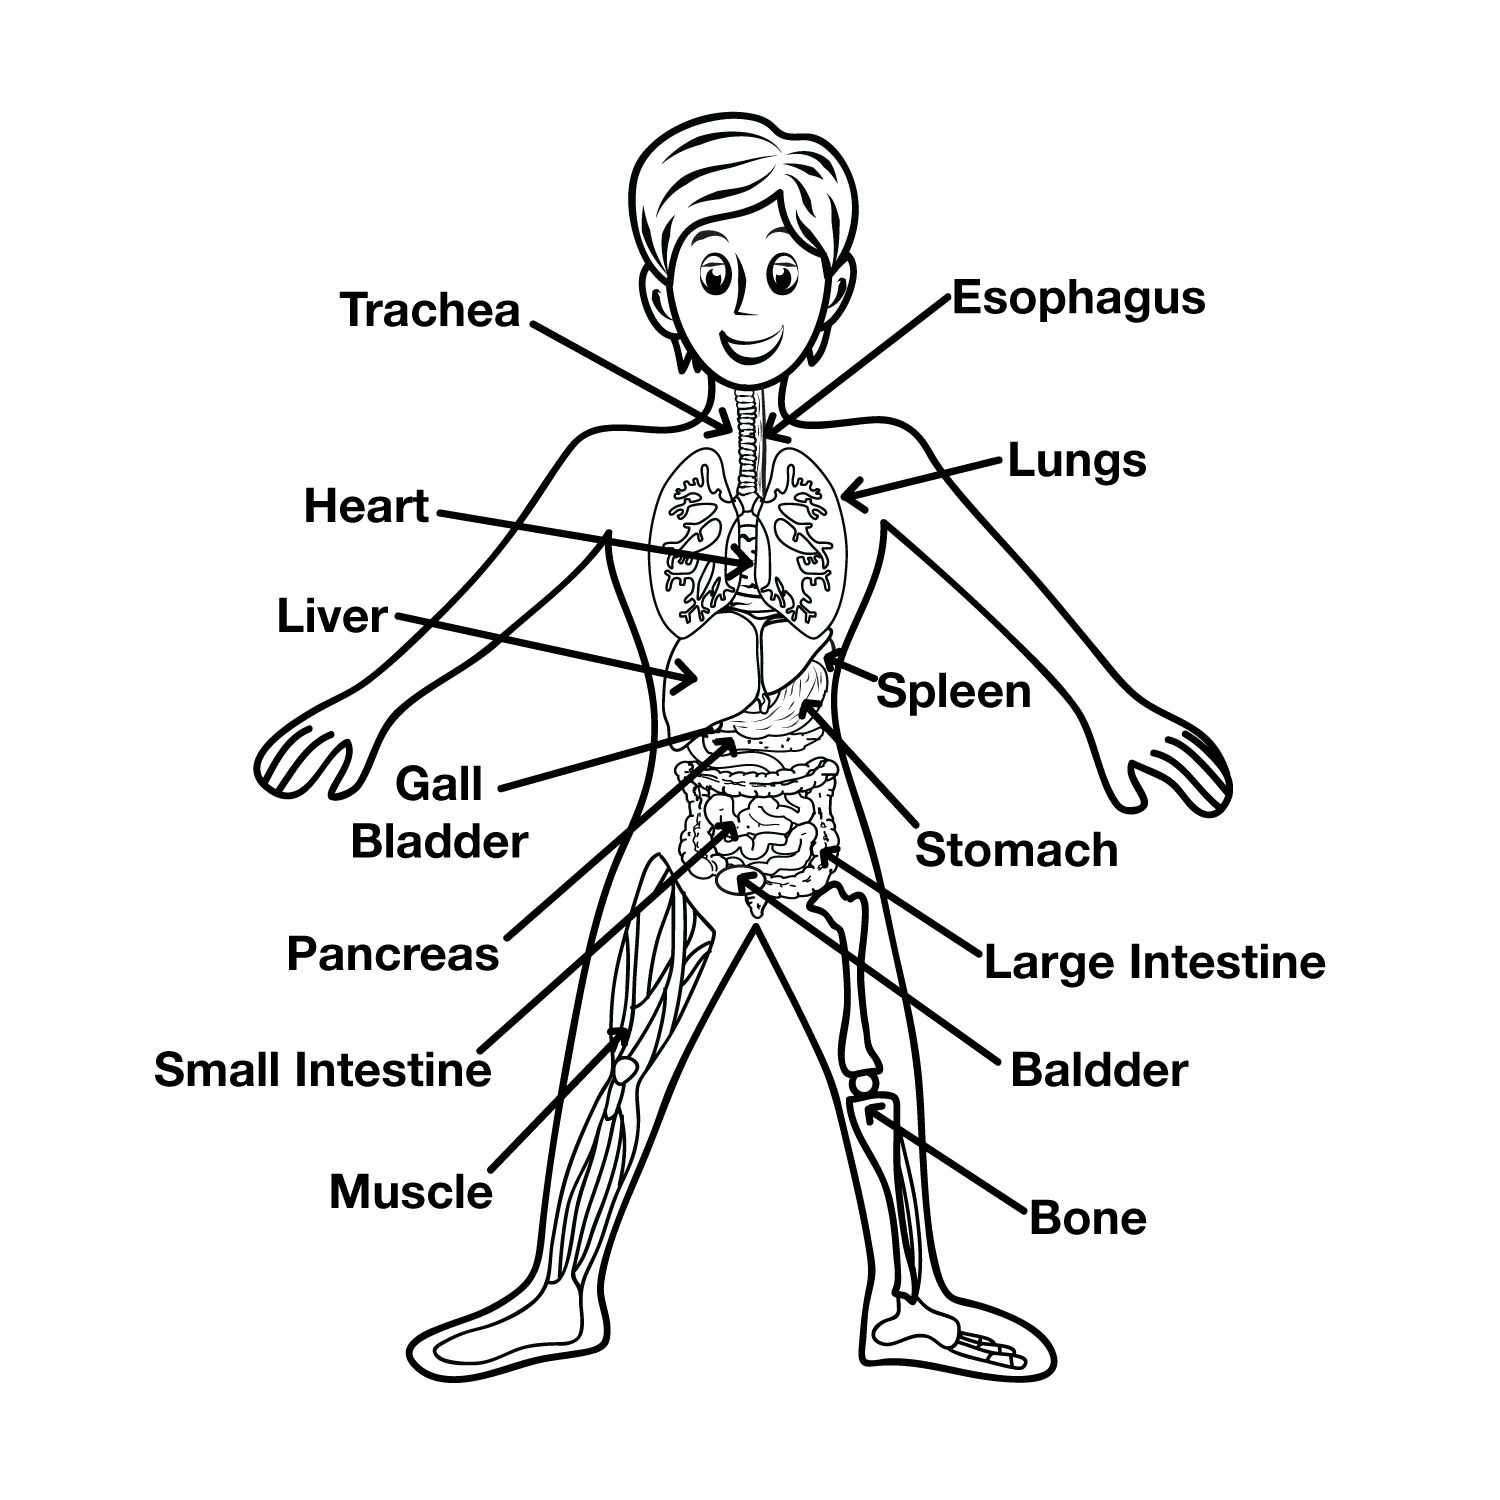 Human Body Diagram For Kids  Health, Medicine and Anatomy